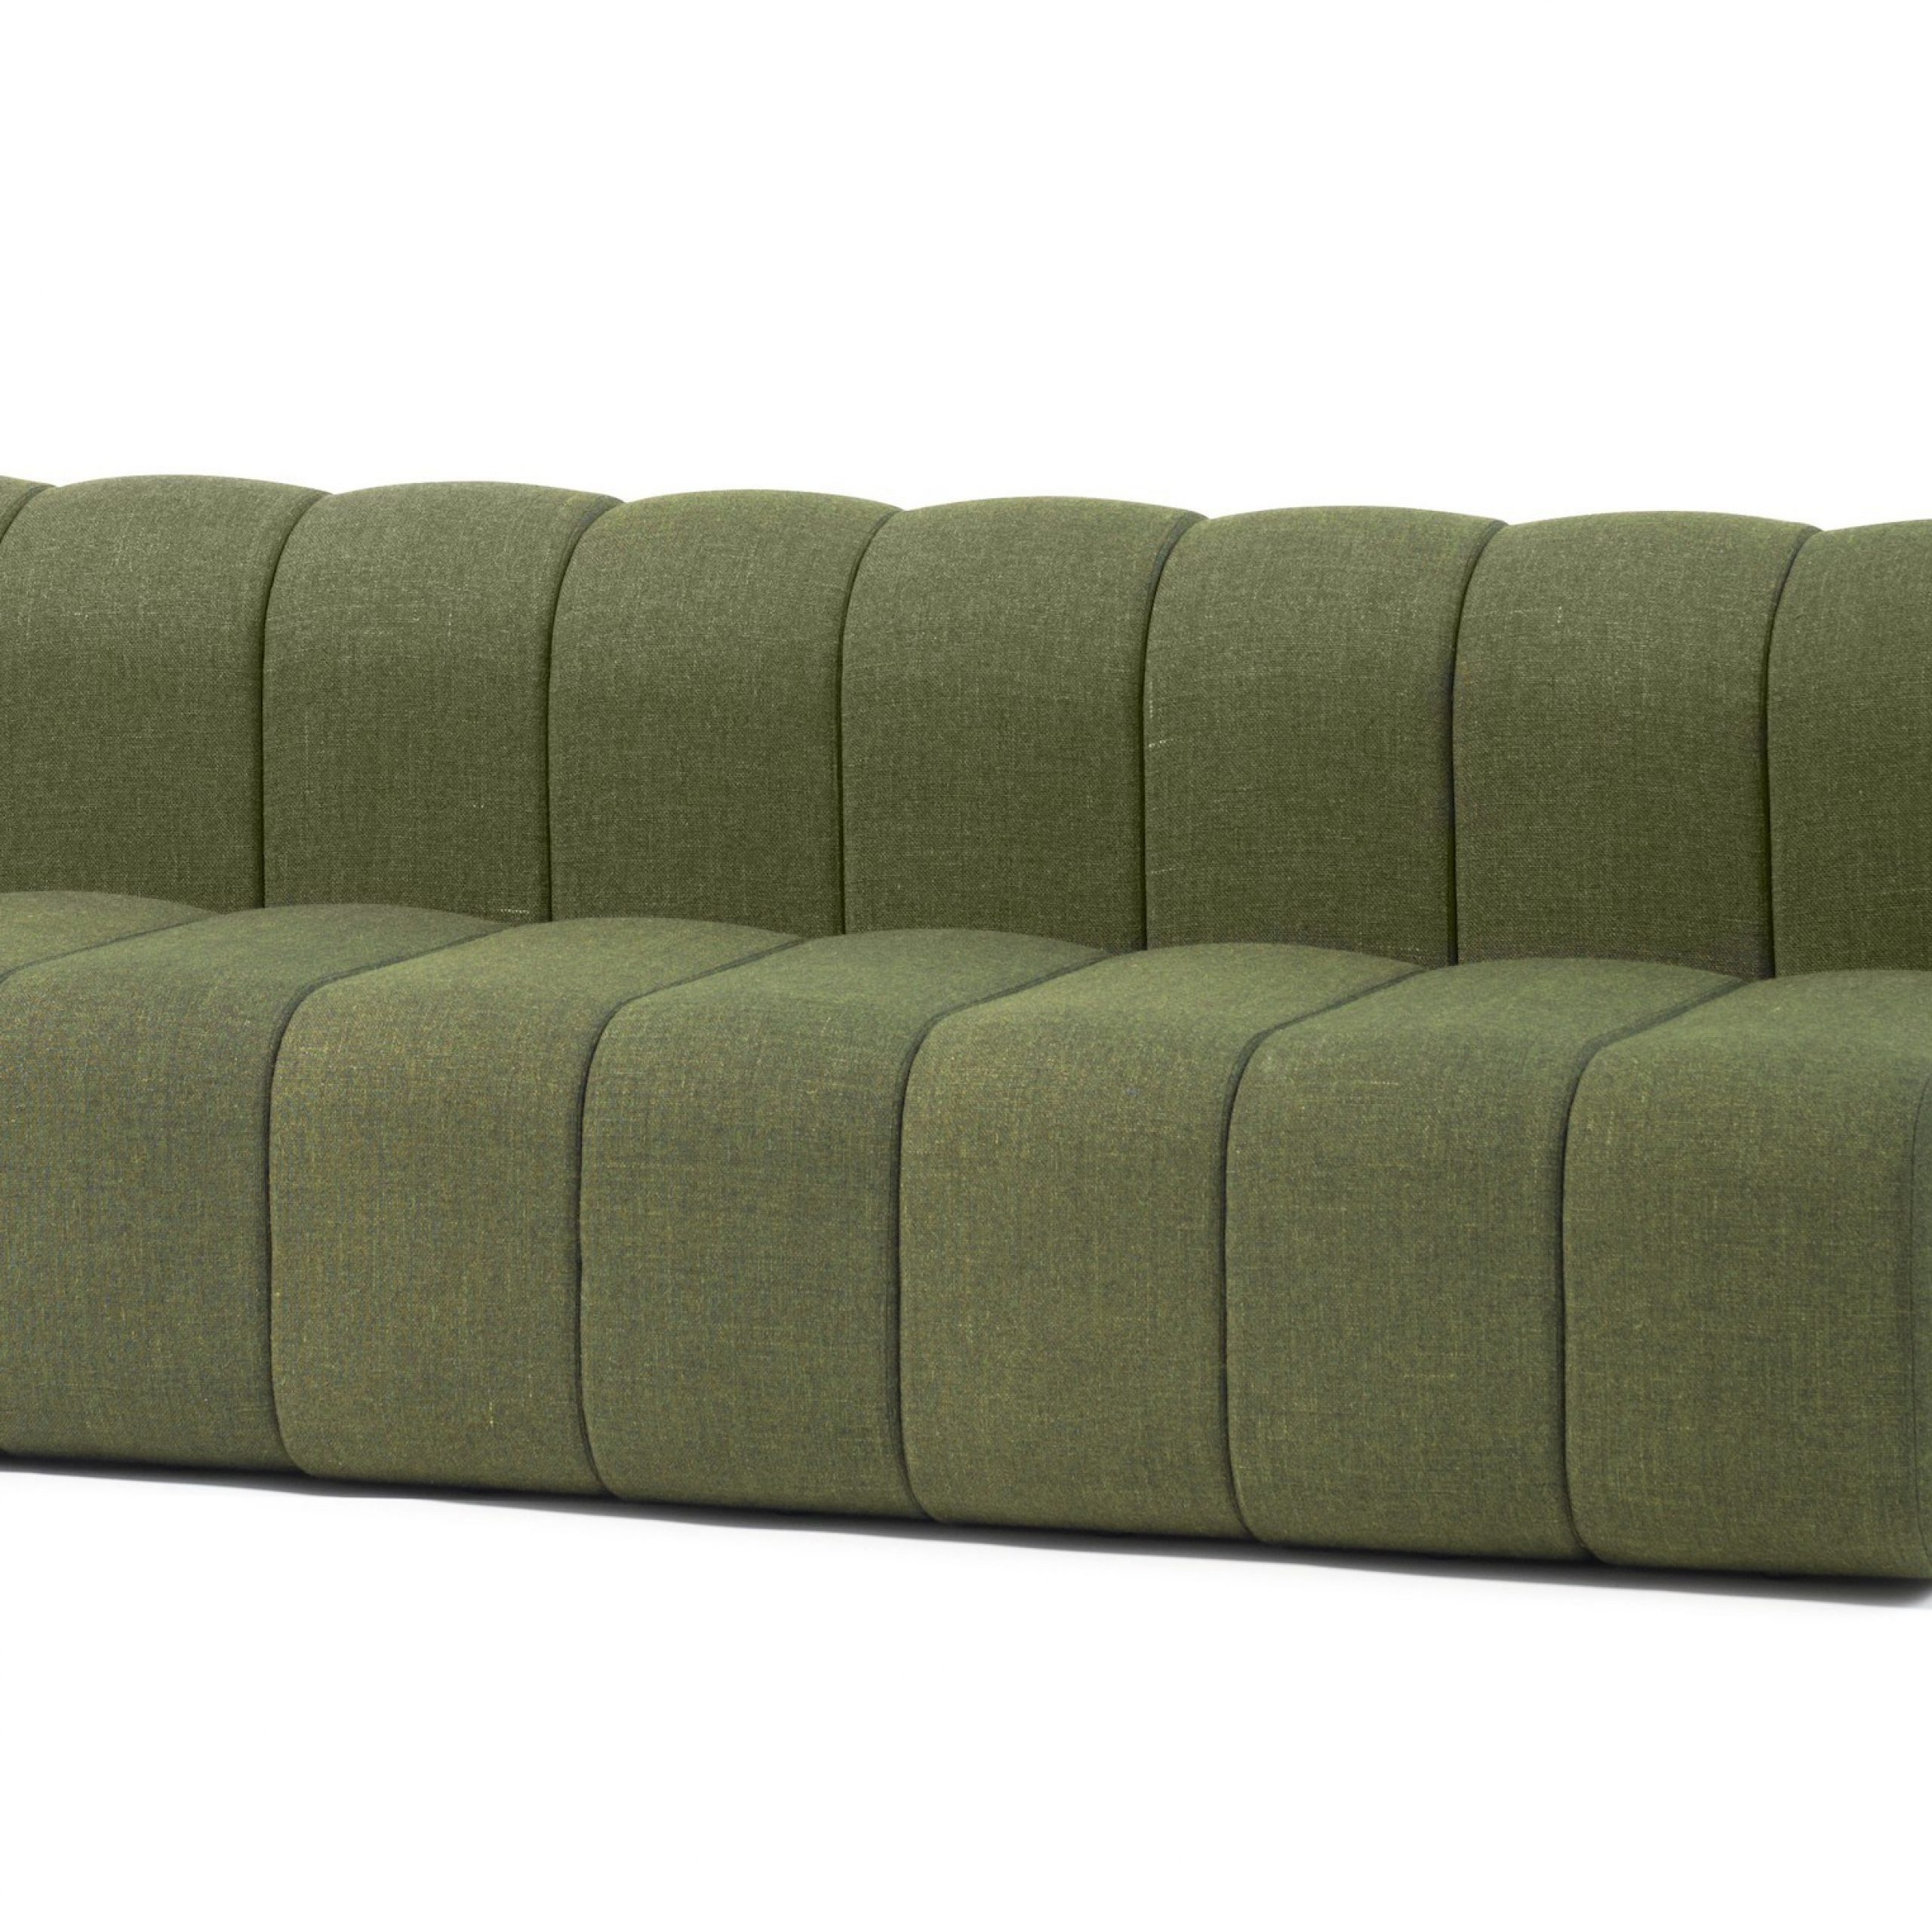 Famous 2Pc Maddox Right Arm Facing Sectional Sofas With Cuddler Brown Regarding My Bobs Sectional Sofa (View 4 of 18)